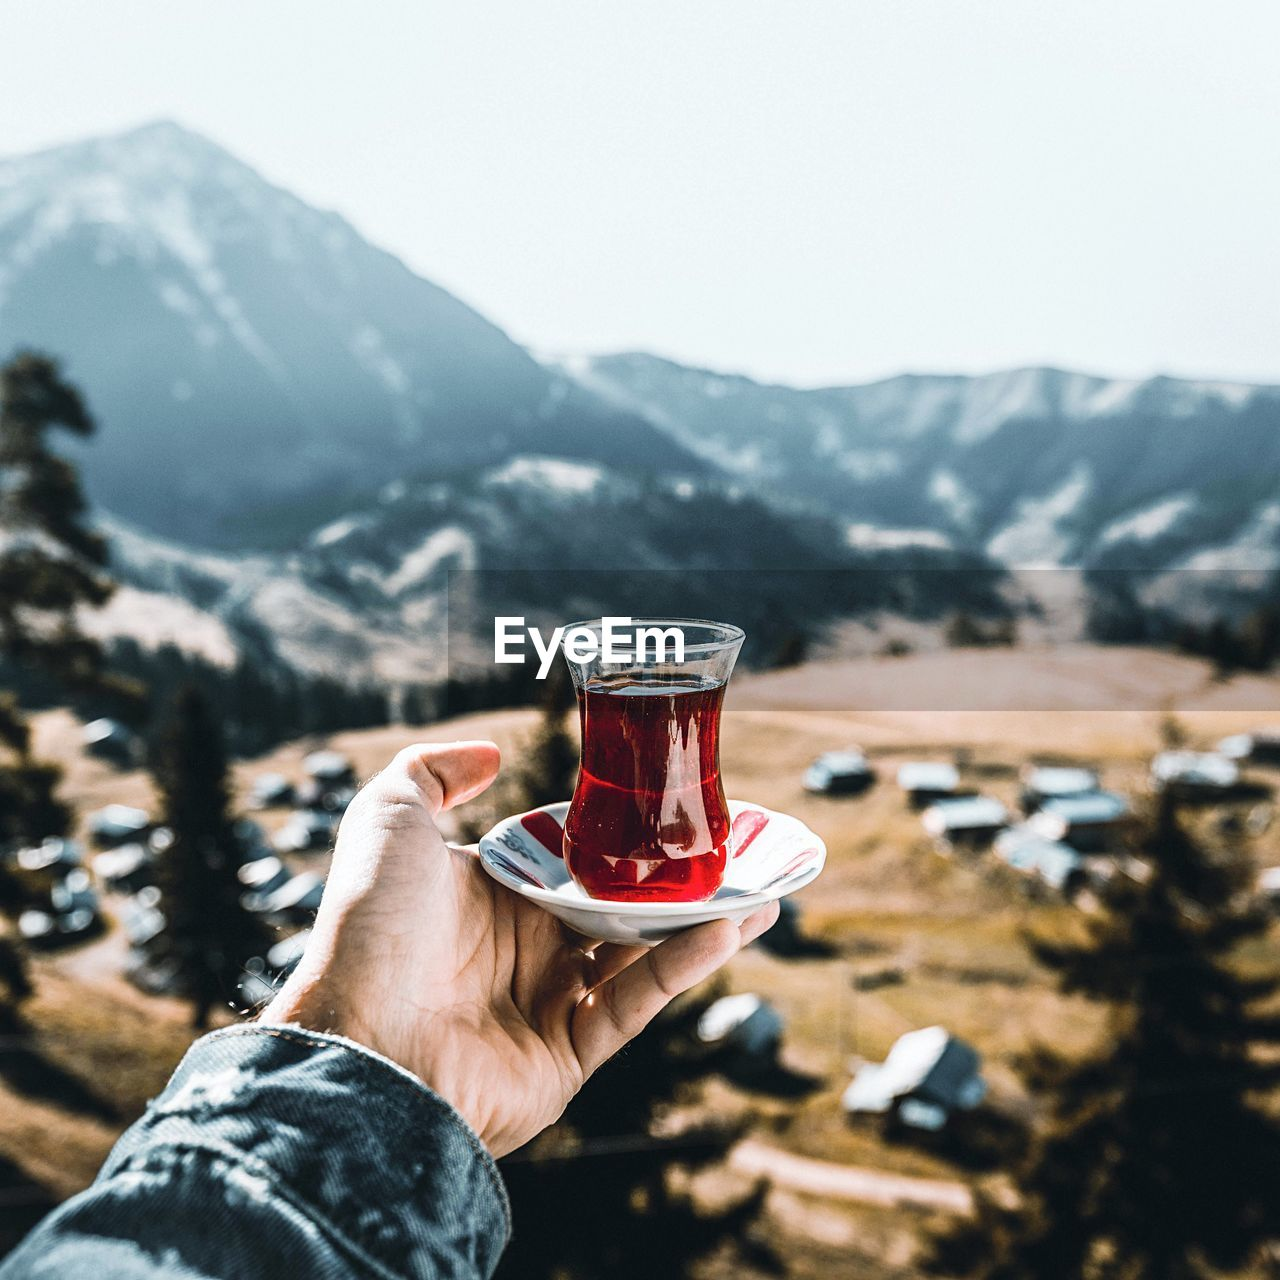 human hand, mountain, drink, hand, one person, human body part, refreshment, holding, mountain range, food and drink, day, leisure activity, lifestyles, focus on foreground, glass, cold temperature, real people, nature, scenics - nature, personal perspective, body part, outdoors, snowcapped mountain, finger